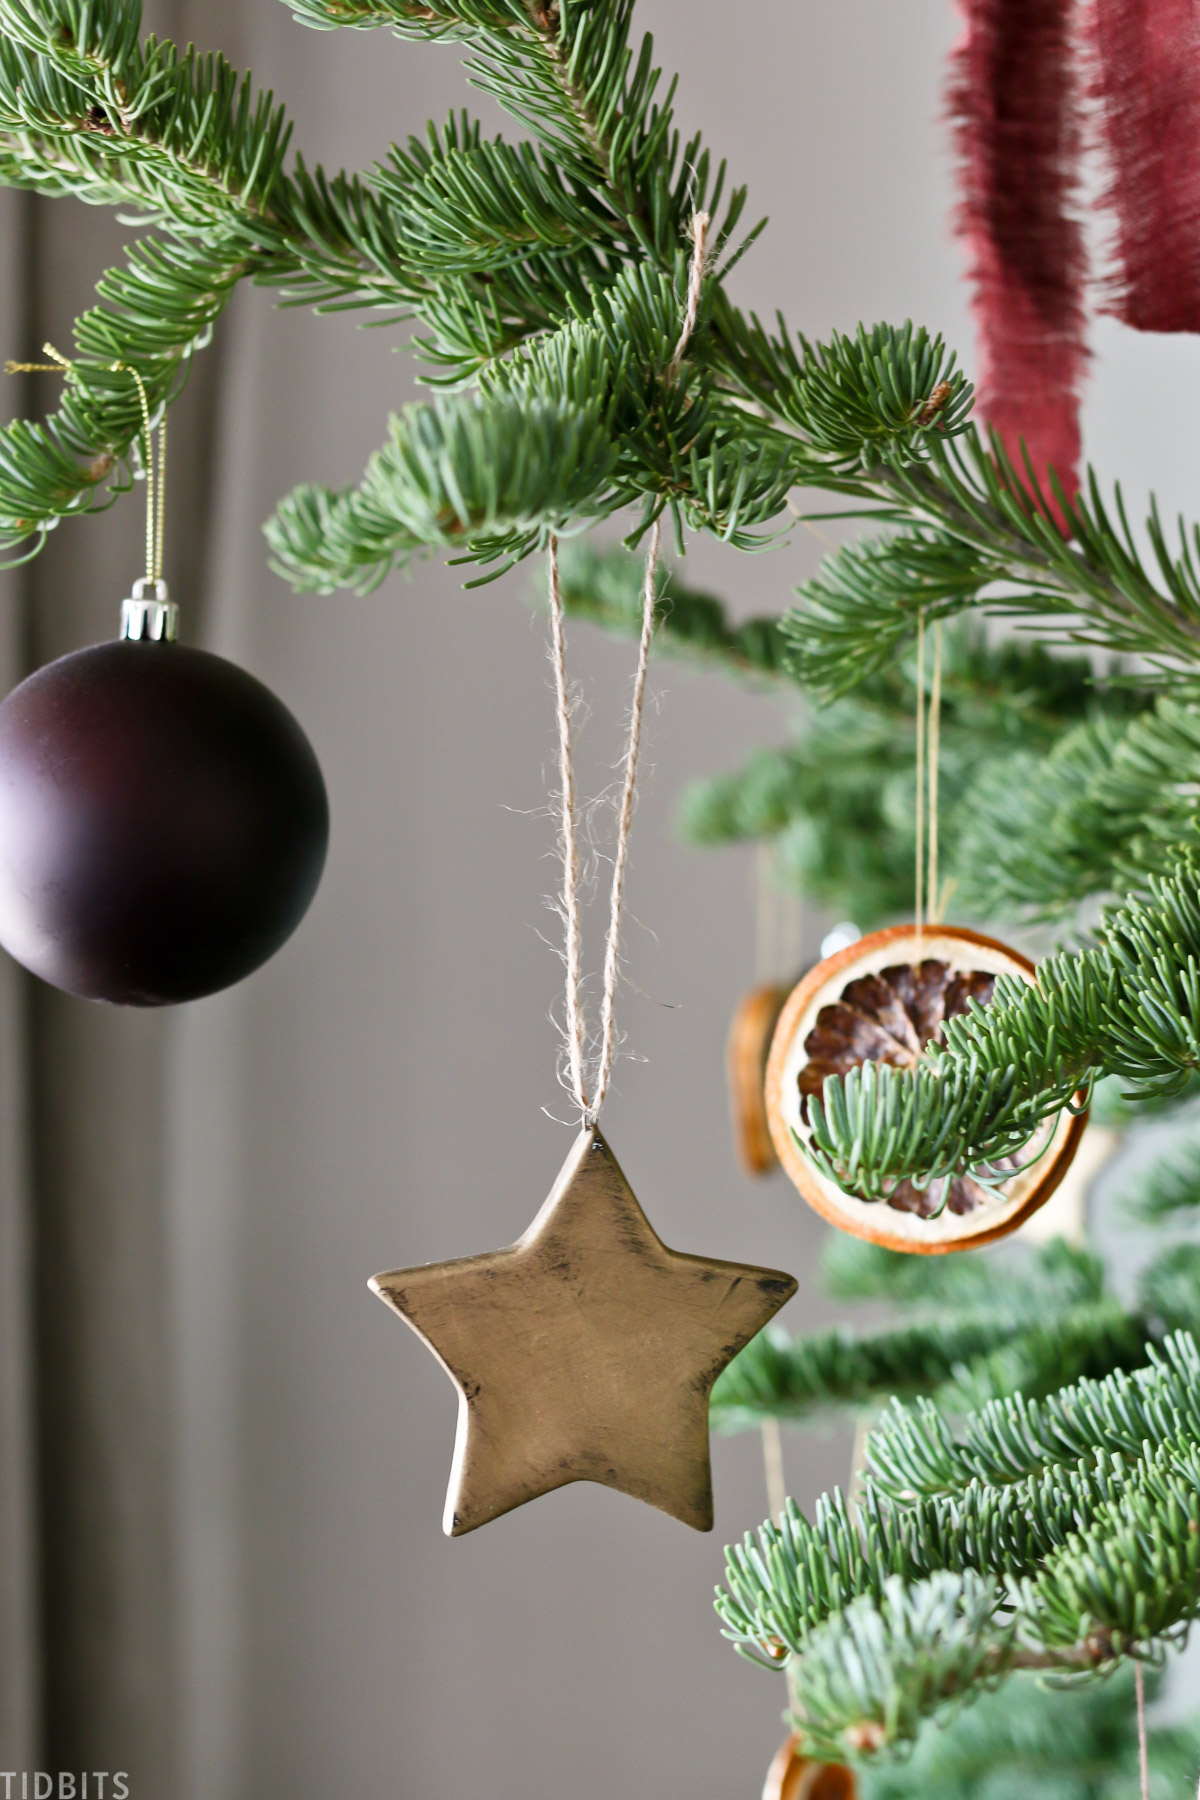 ceramic star hanging off Christmas tree branch next to round ornament and orange garland